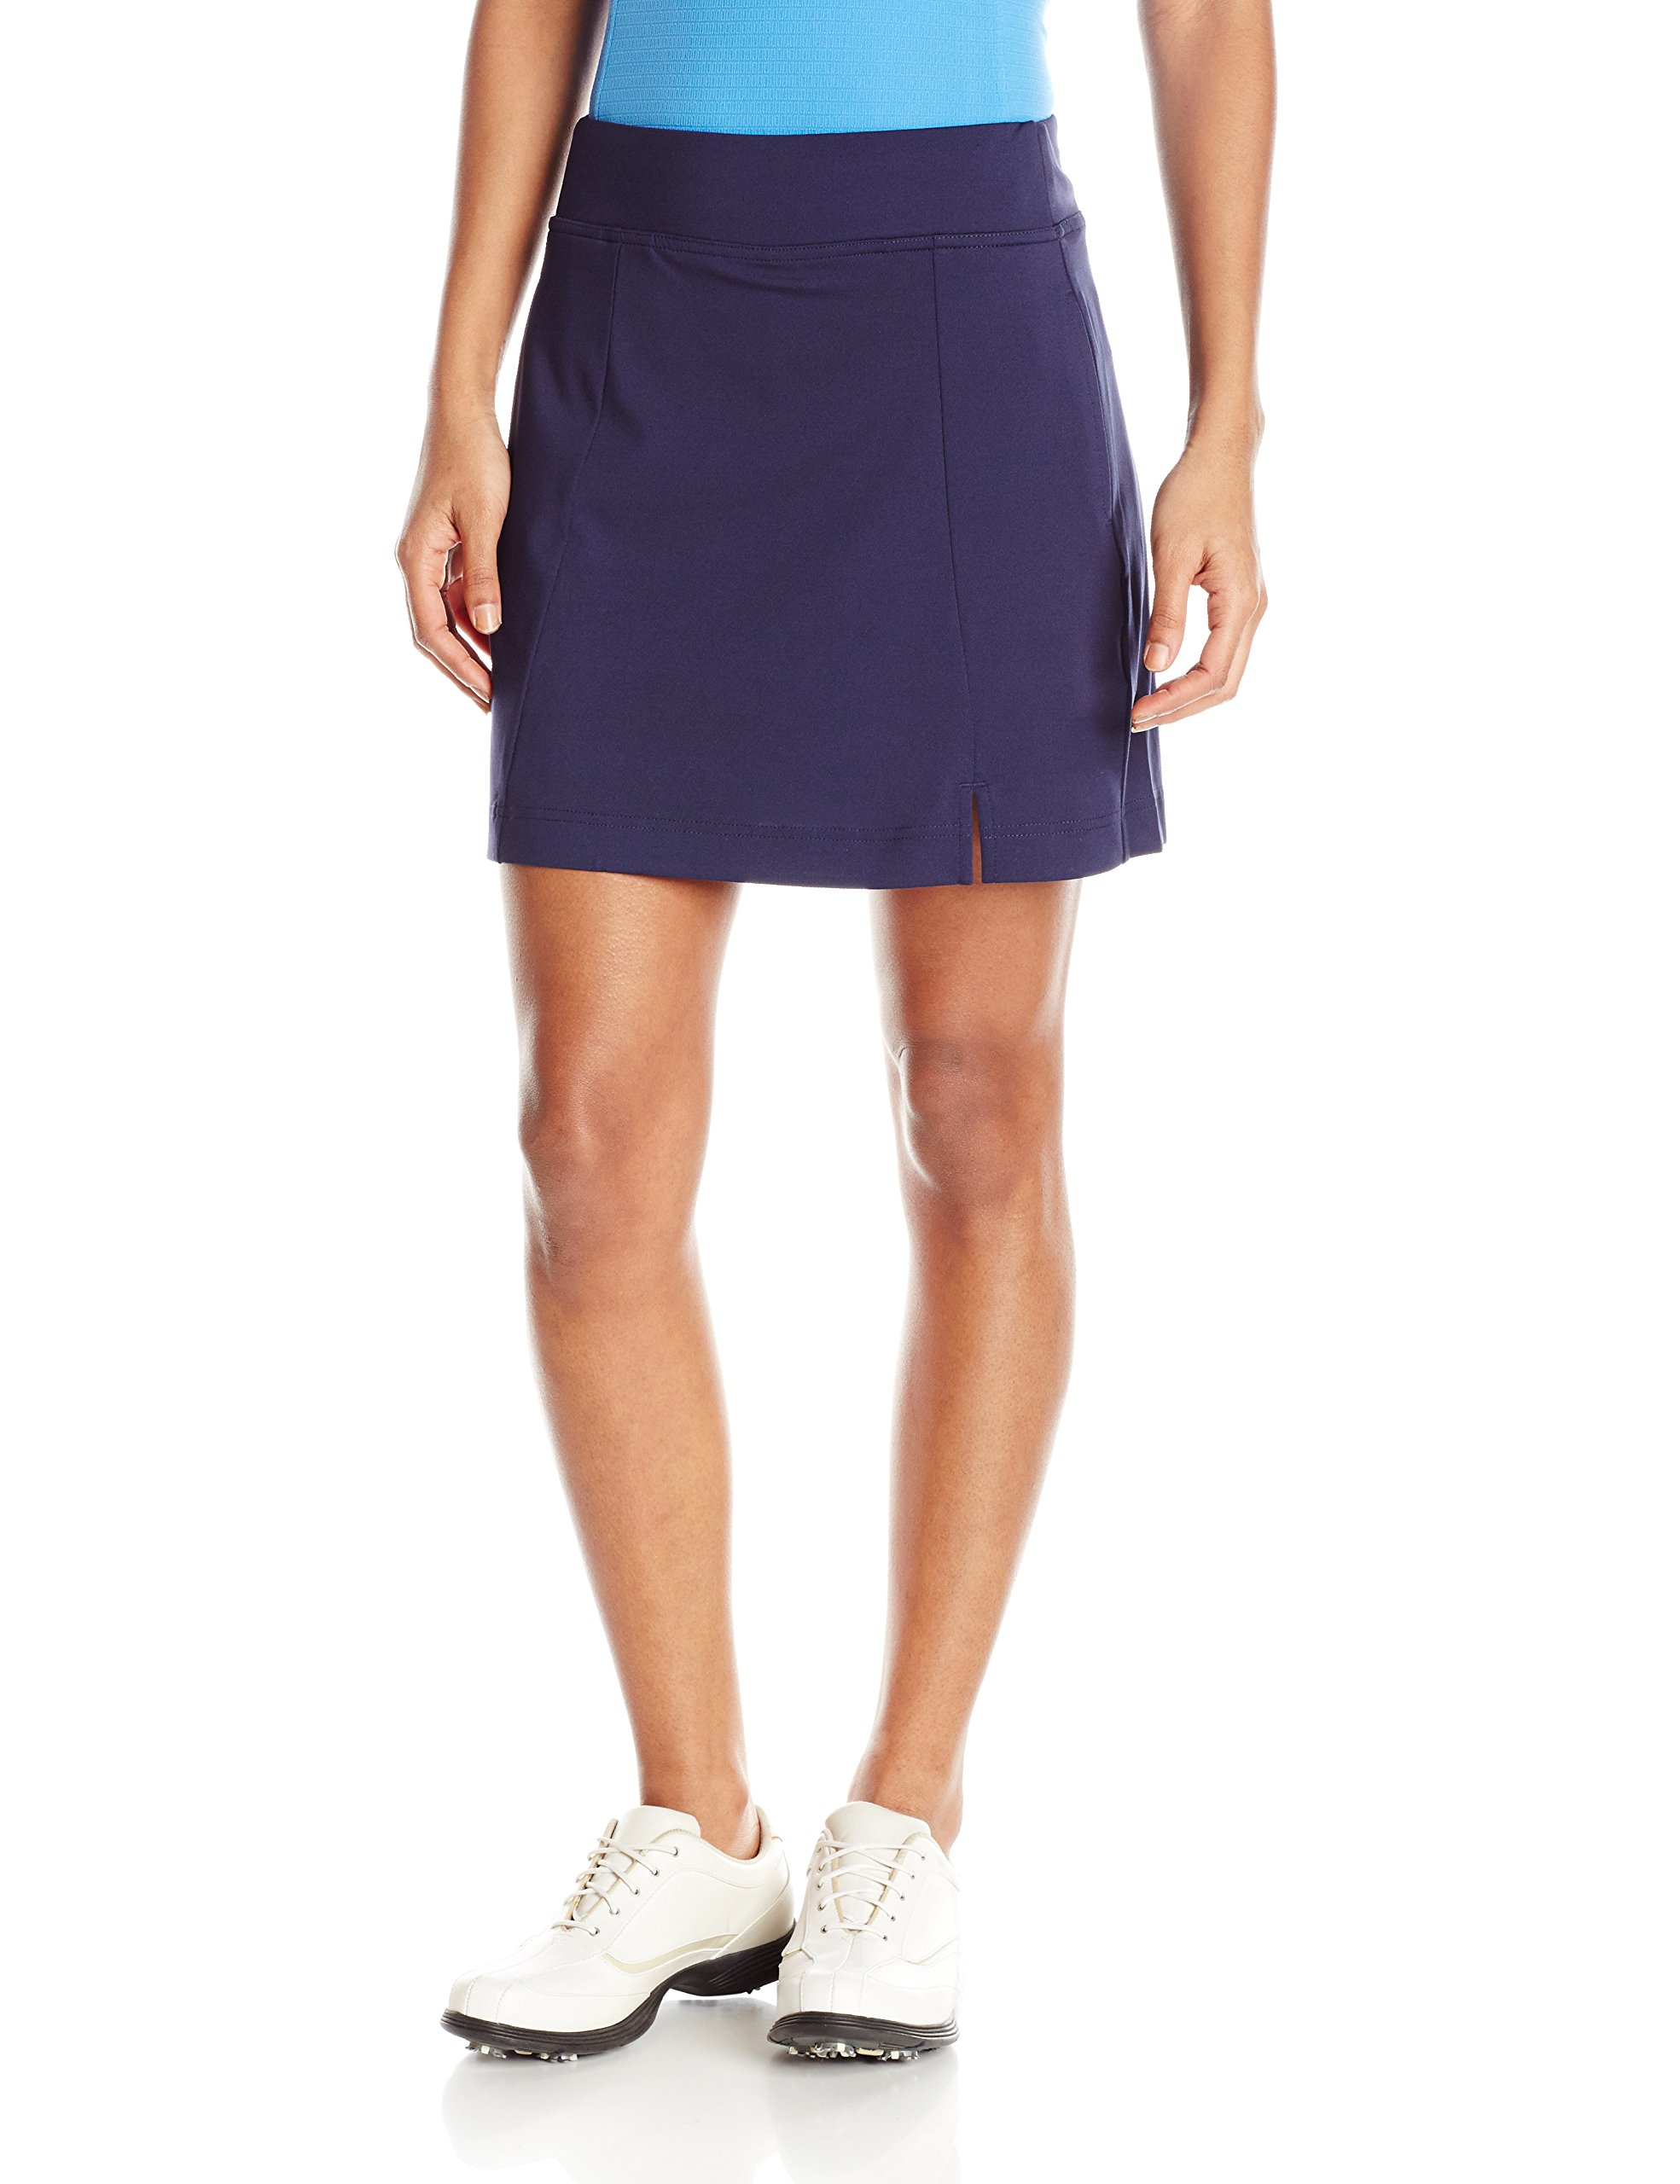 Callaway Women's Golf Performance 17' Knit Skort with Tummy Control, Peacoat, Medium by Callaway